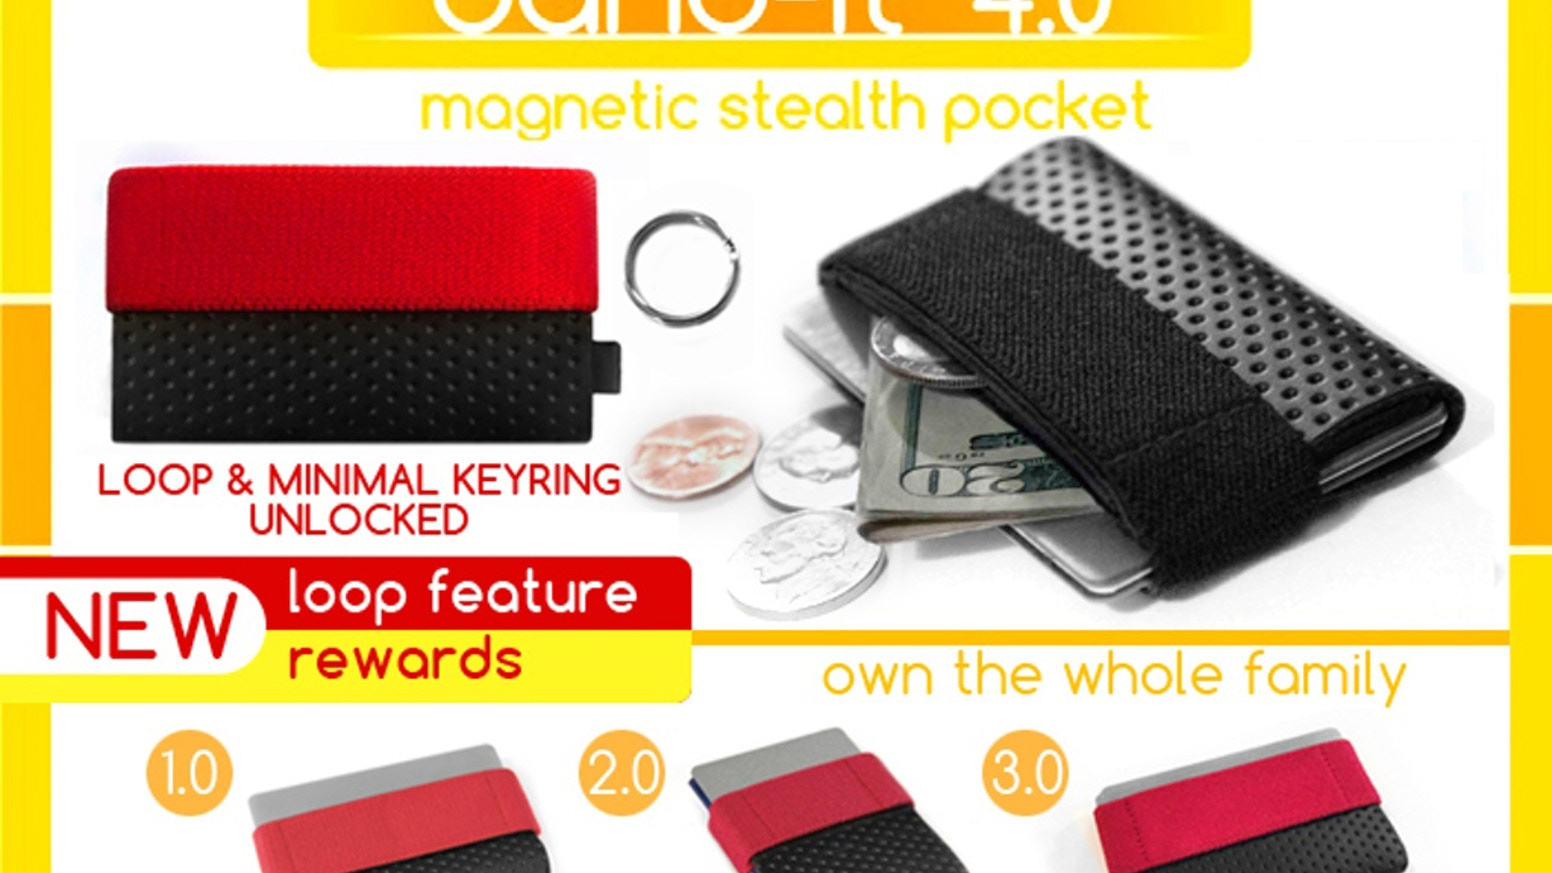 NEW REWARDS! Own the whole Band-it minimal wallet family!